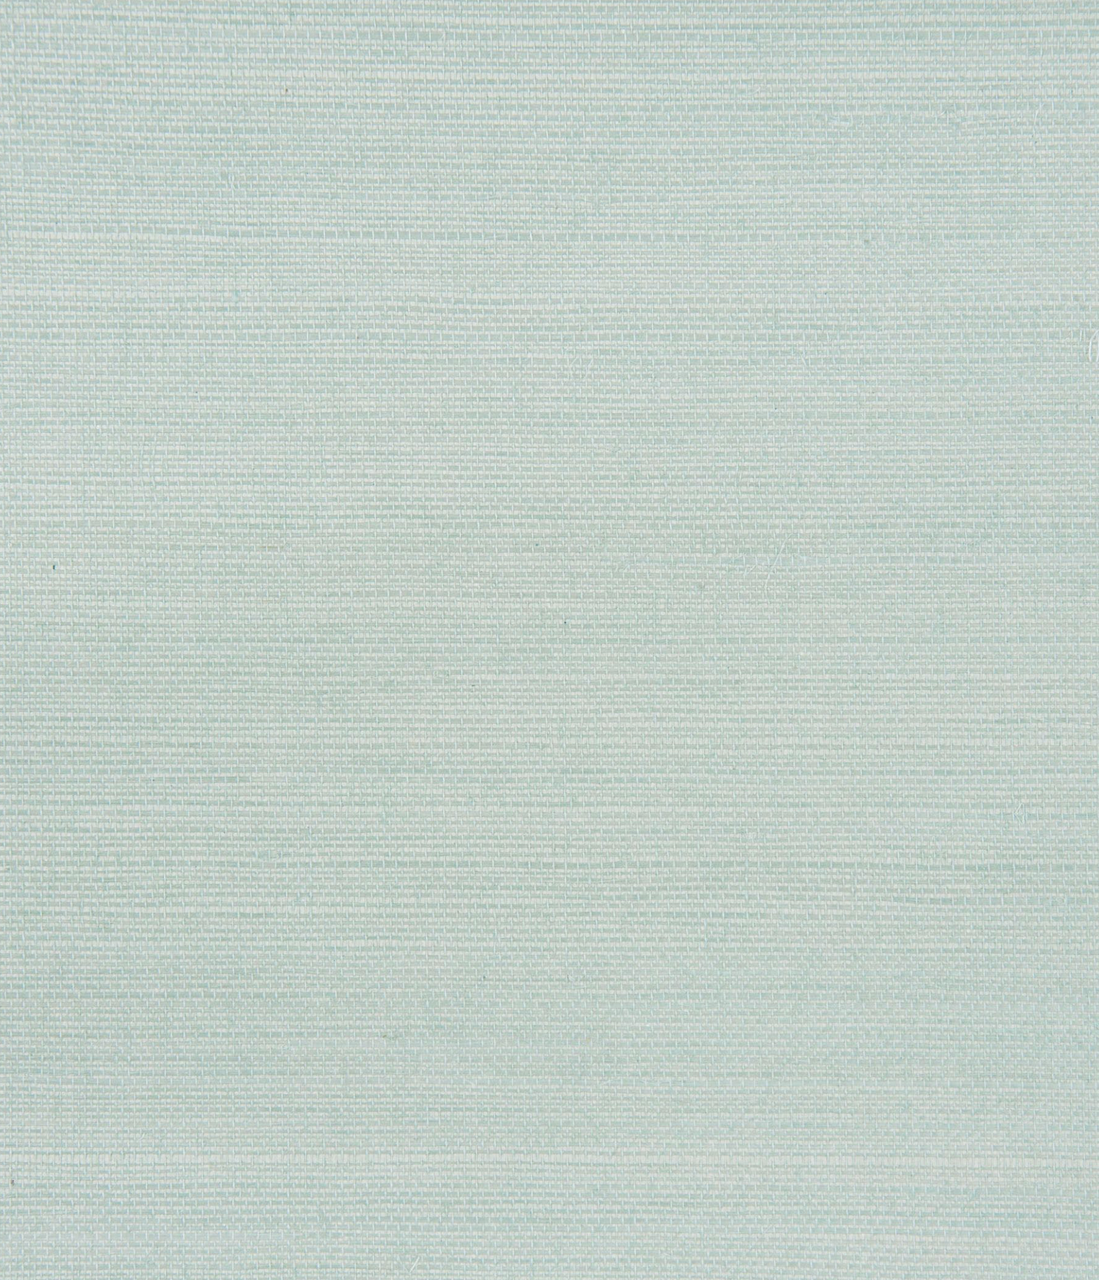 Kravet Couture grasscloth wallpaper, adorn.house, , - adorn.house